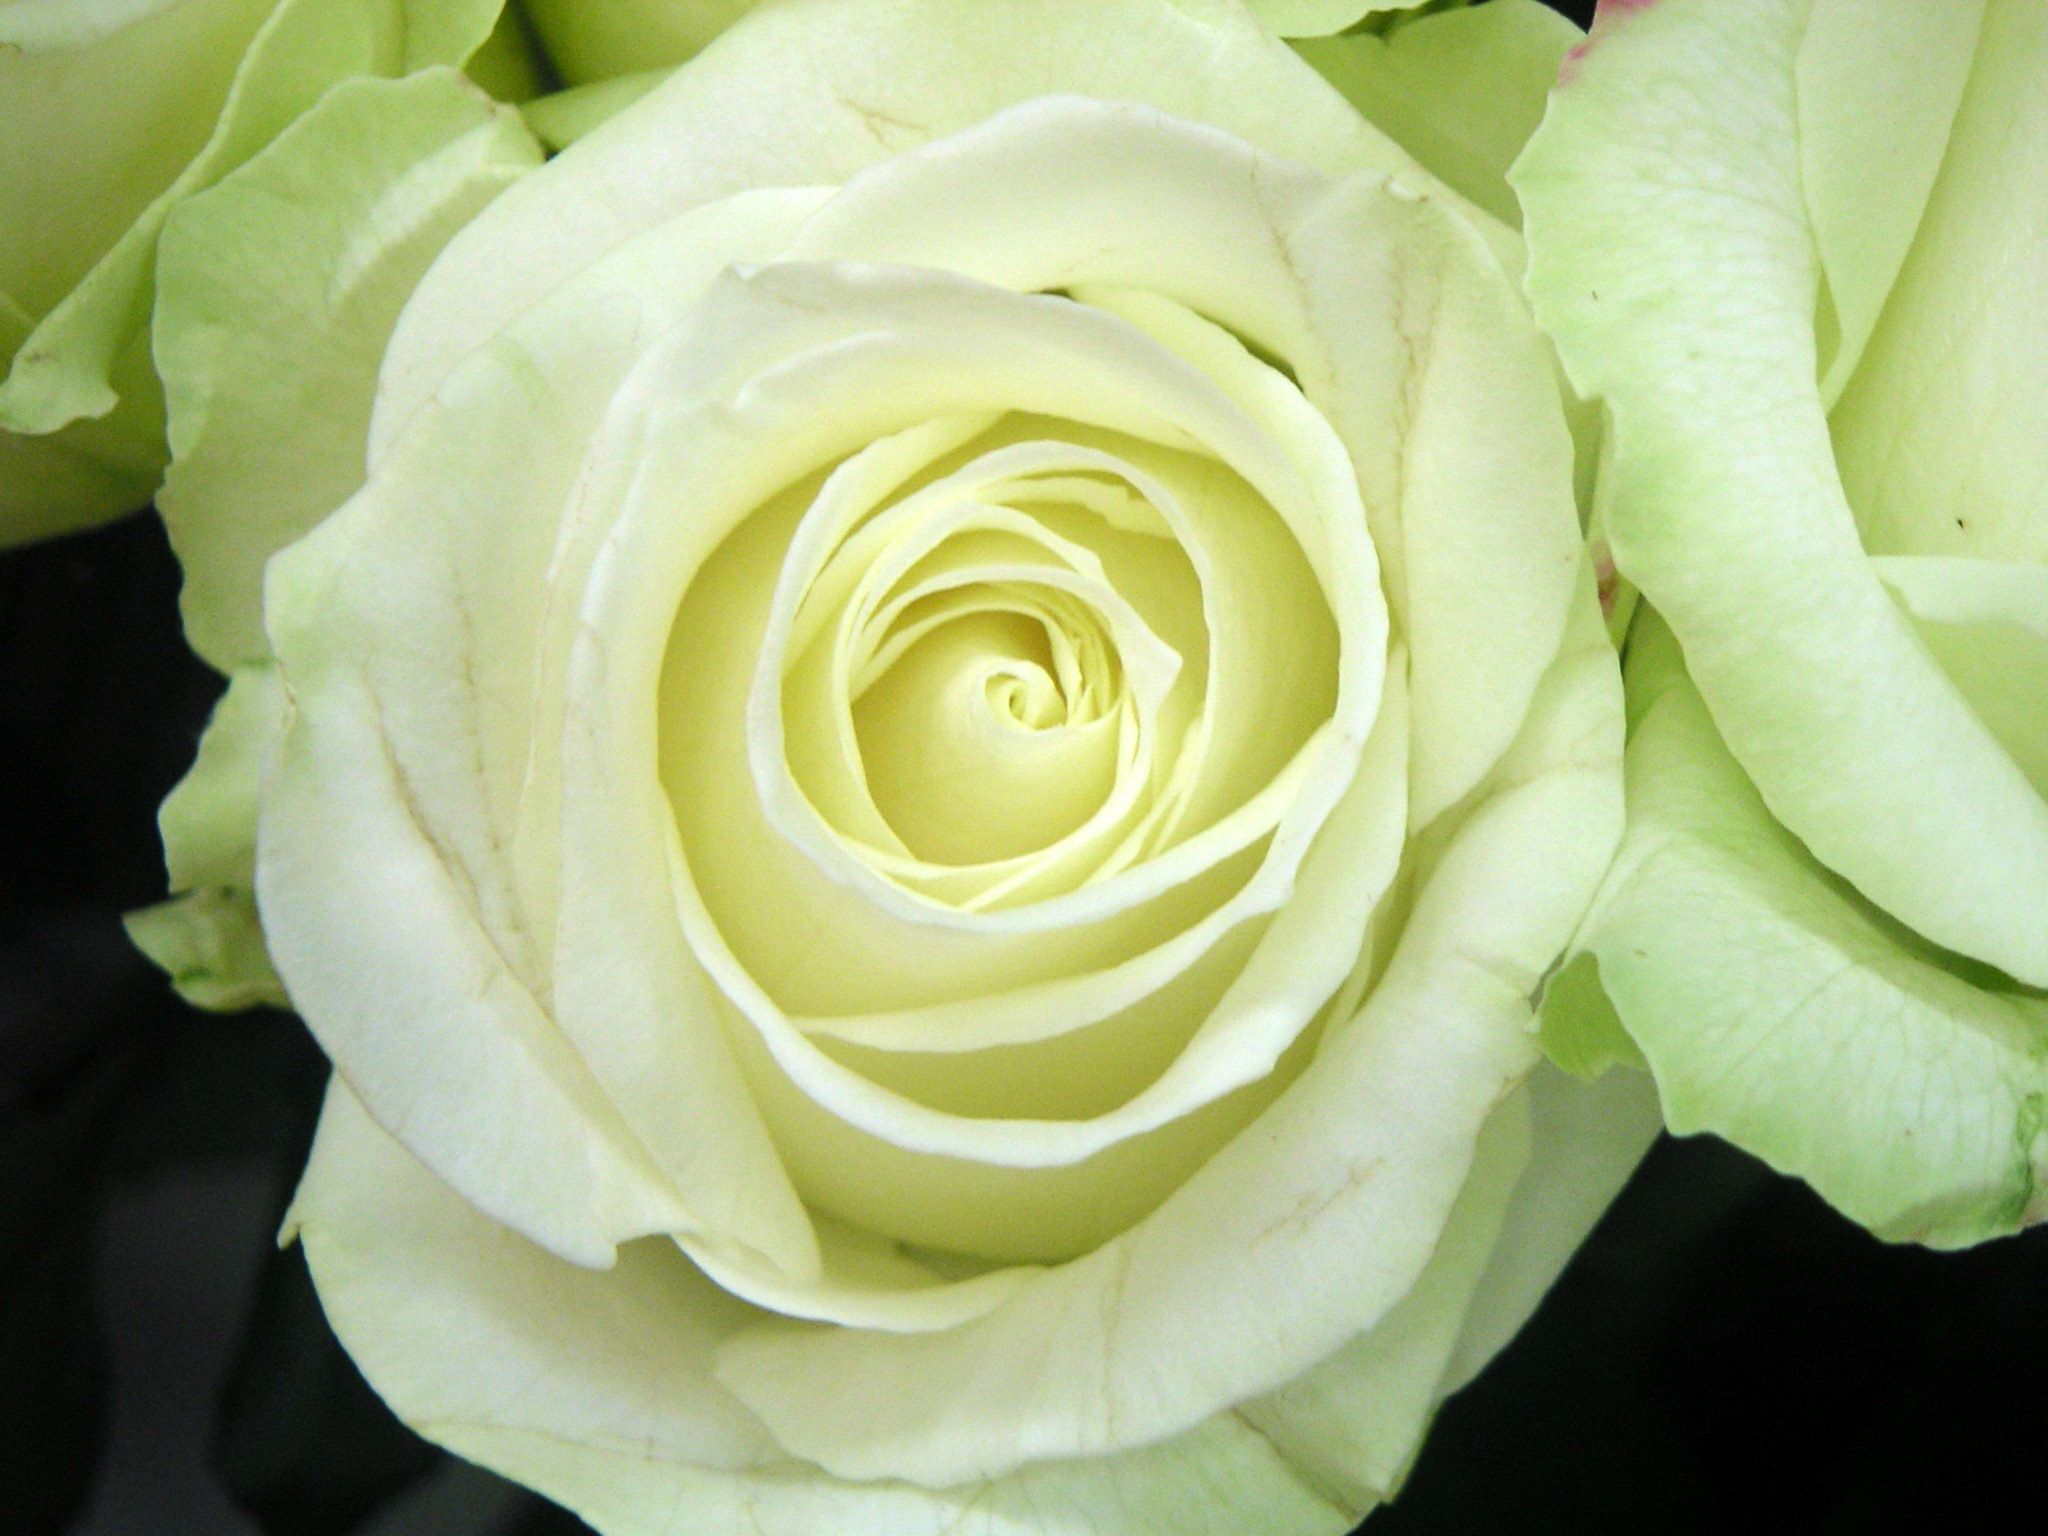 Avalanche is a white rose with a slight green tint depending on ...